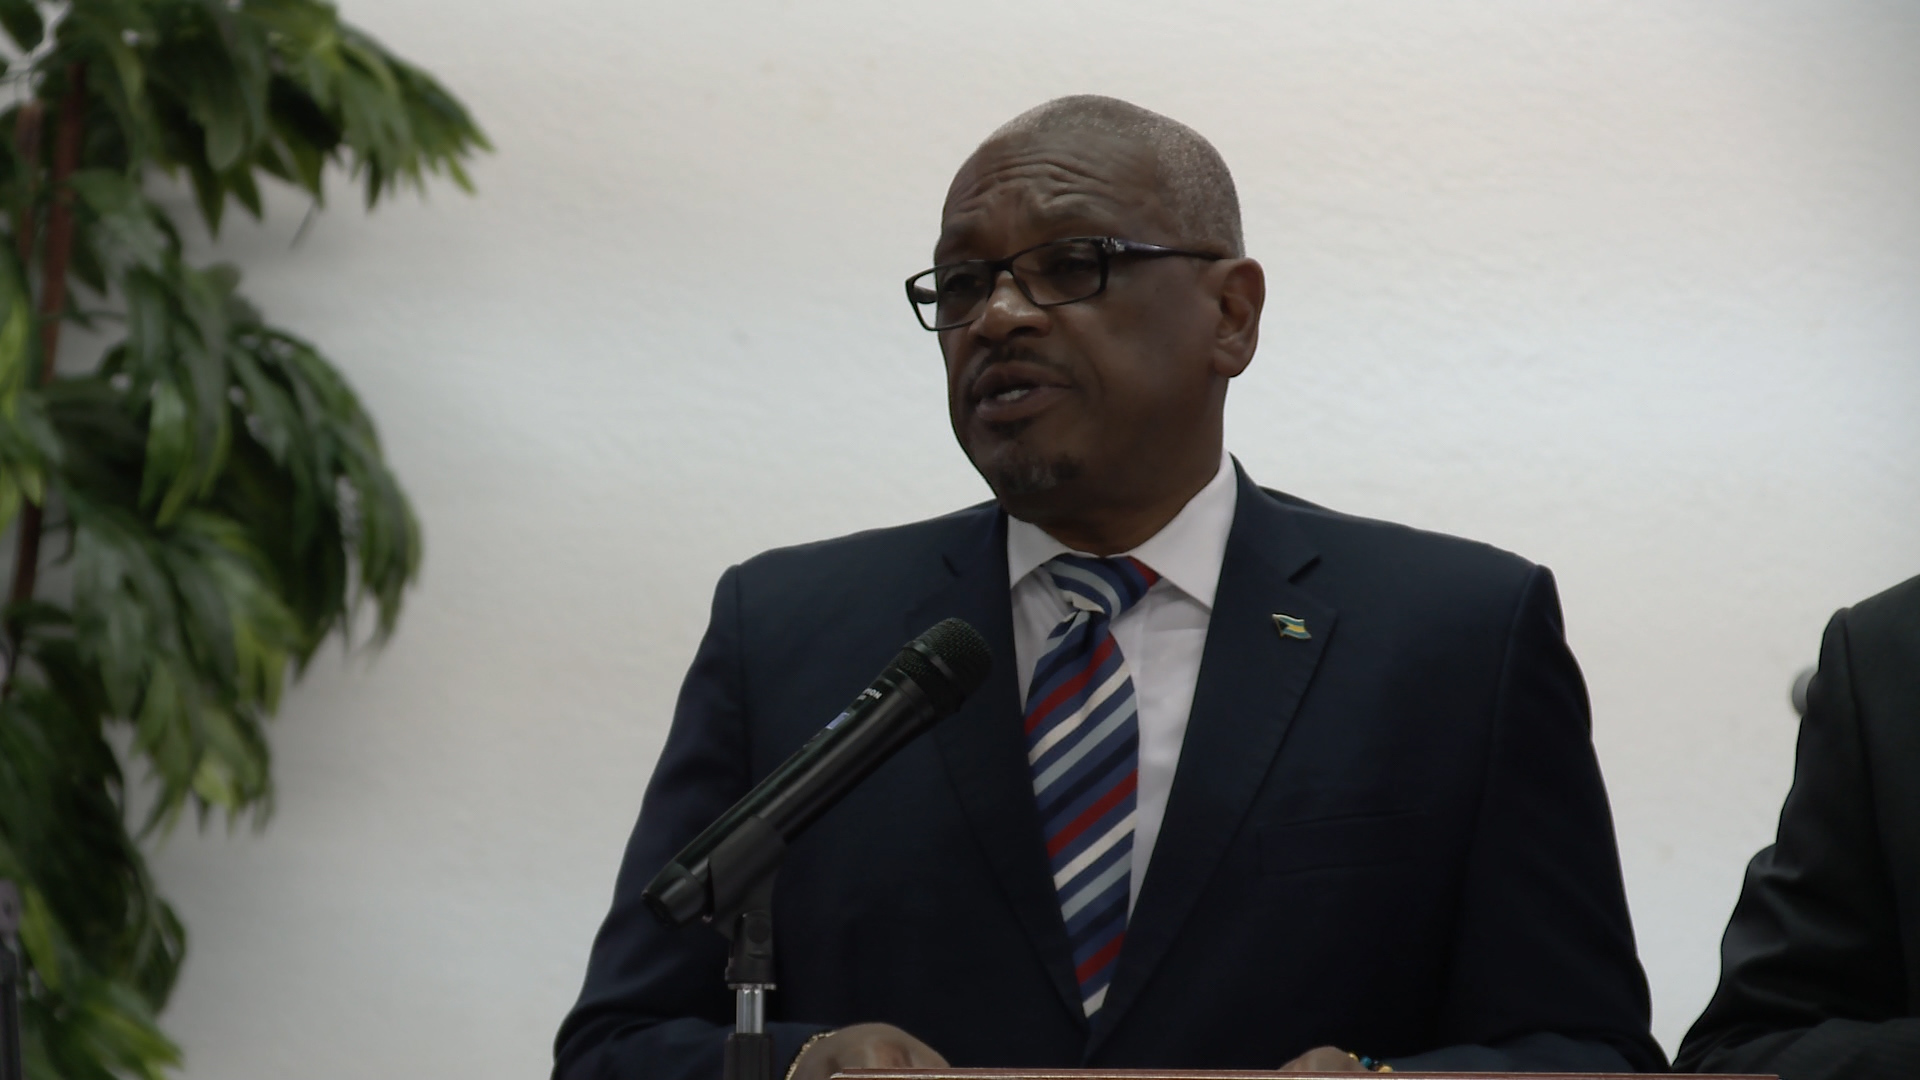 PM addresses Haitian community ahead of demolition deadline